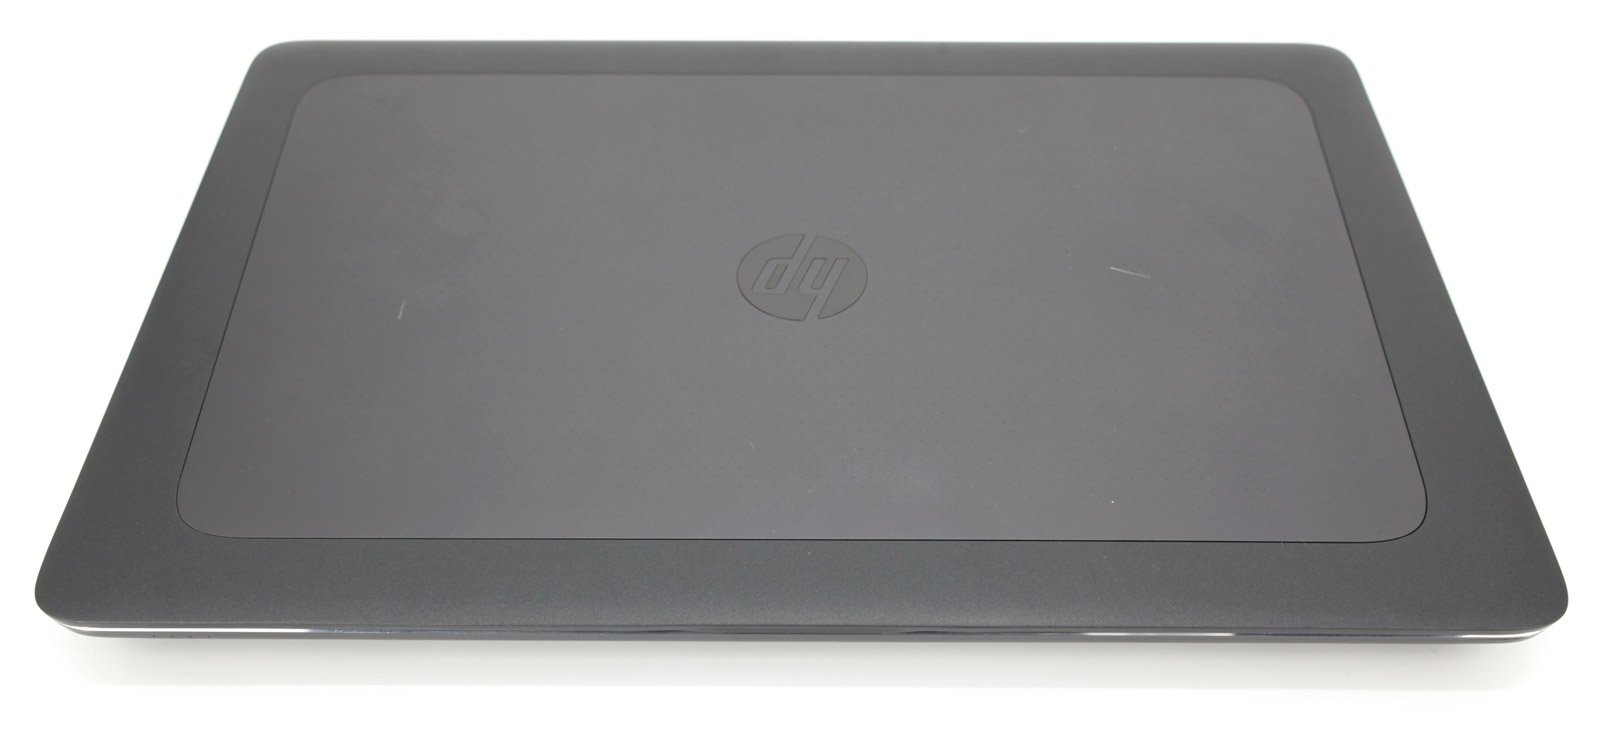 HP ZBook 17 G3 Laptop: Xeon, M5000M, 64GB RAM, 1TB SSD, Warranty - CruiseTech